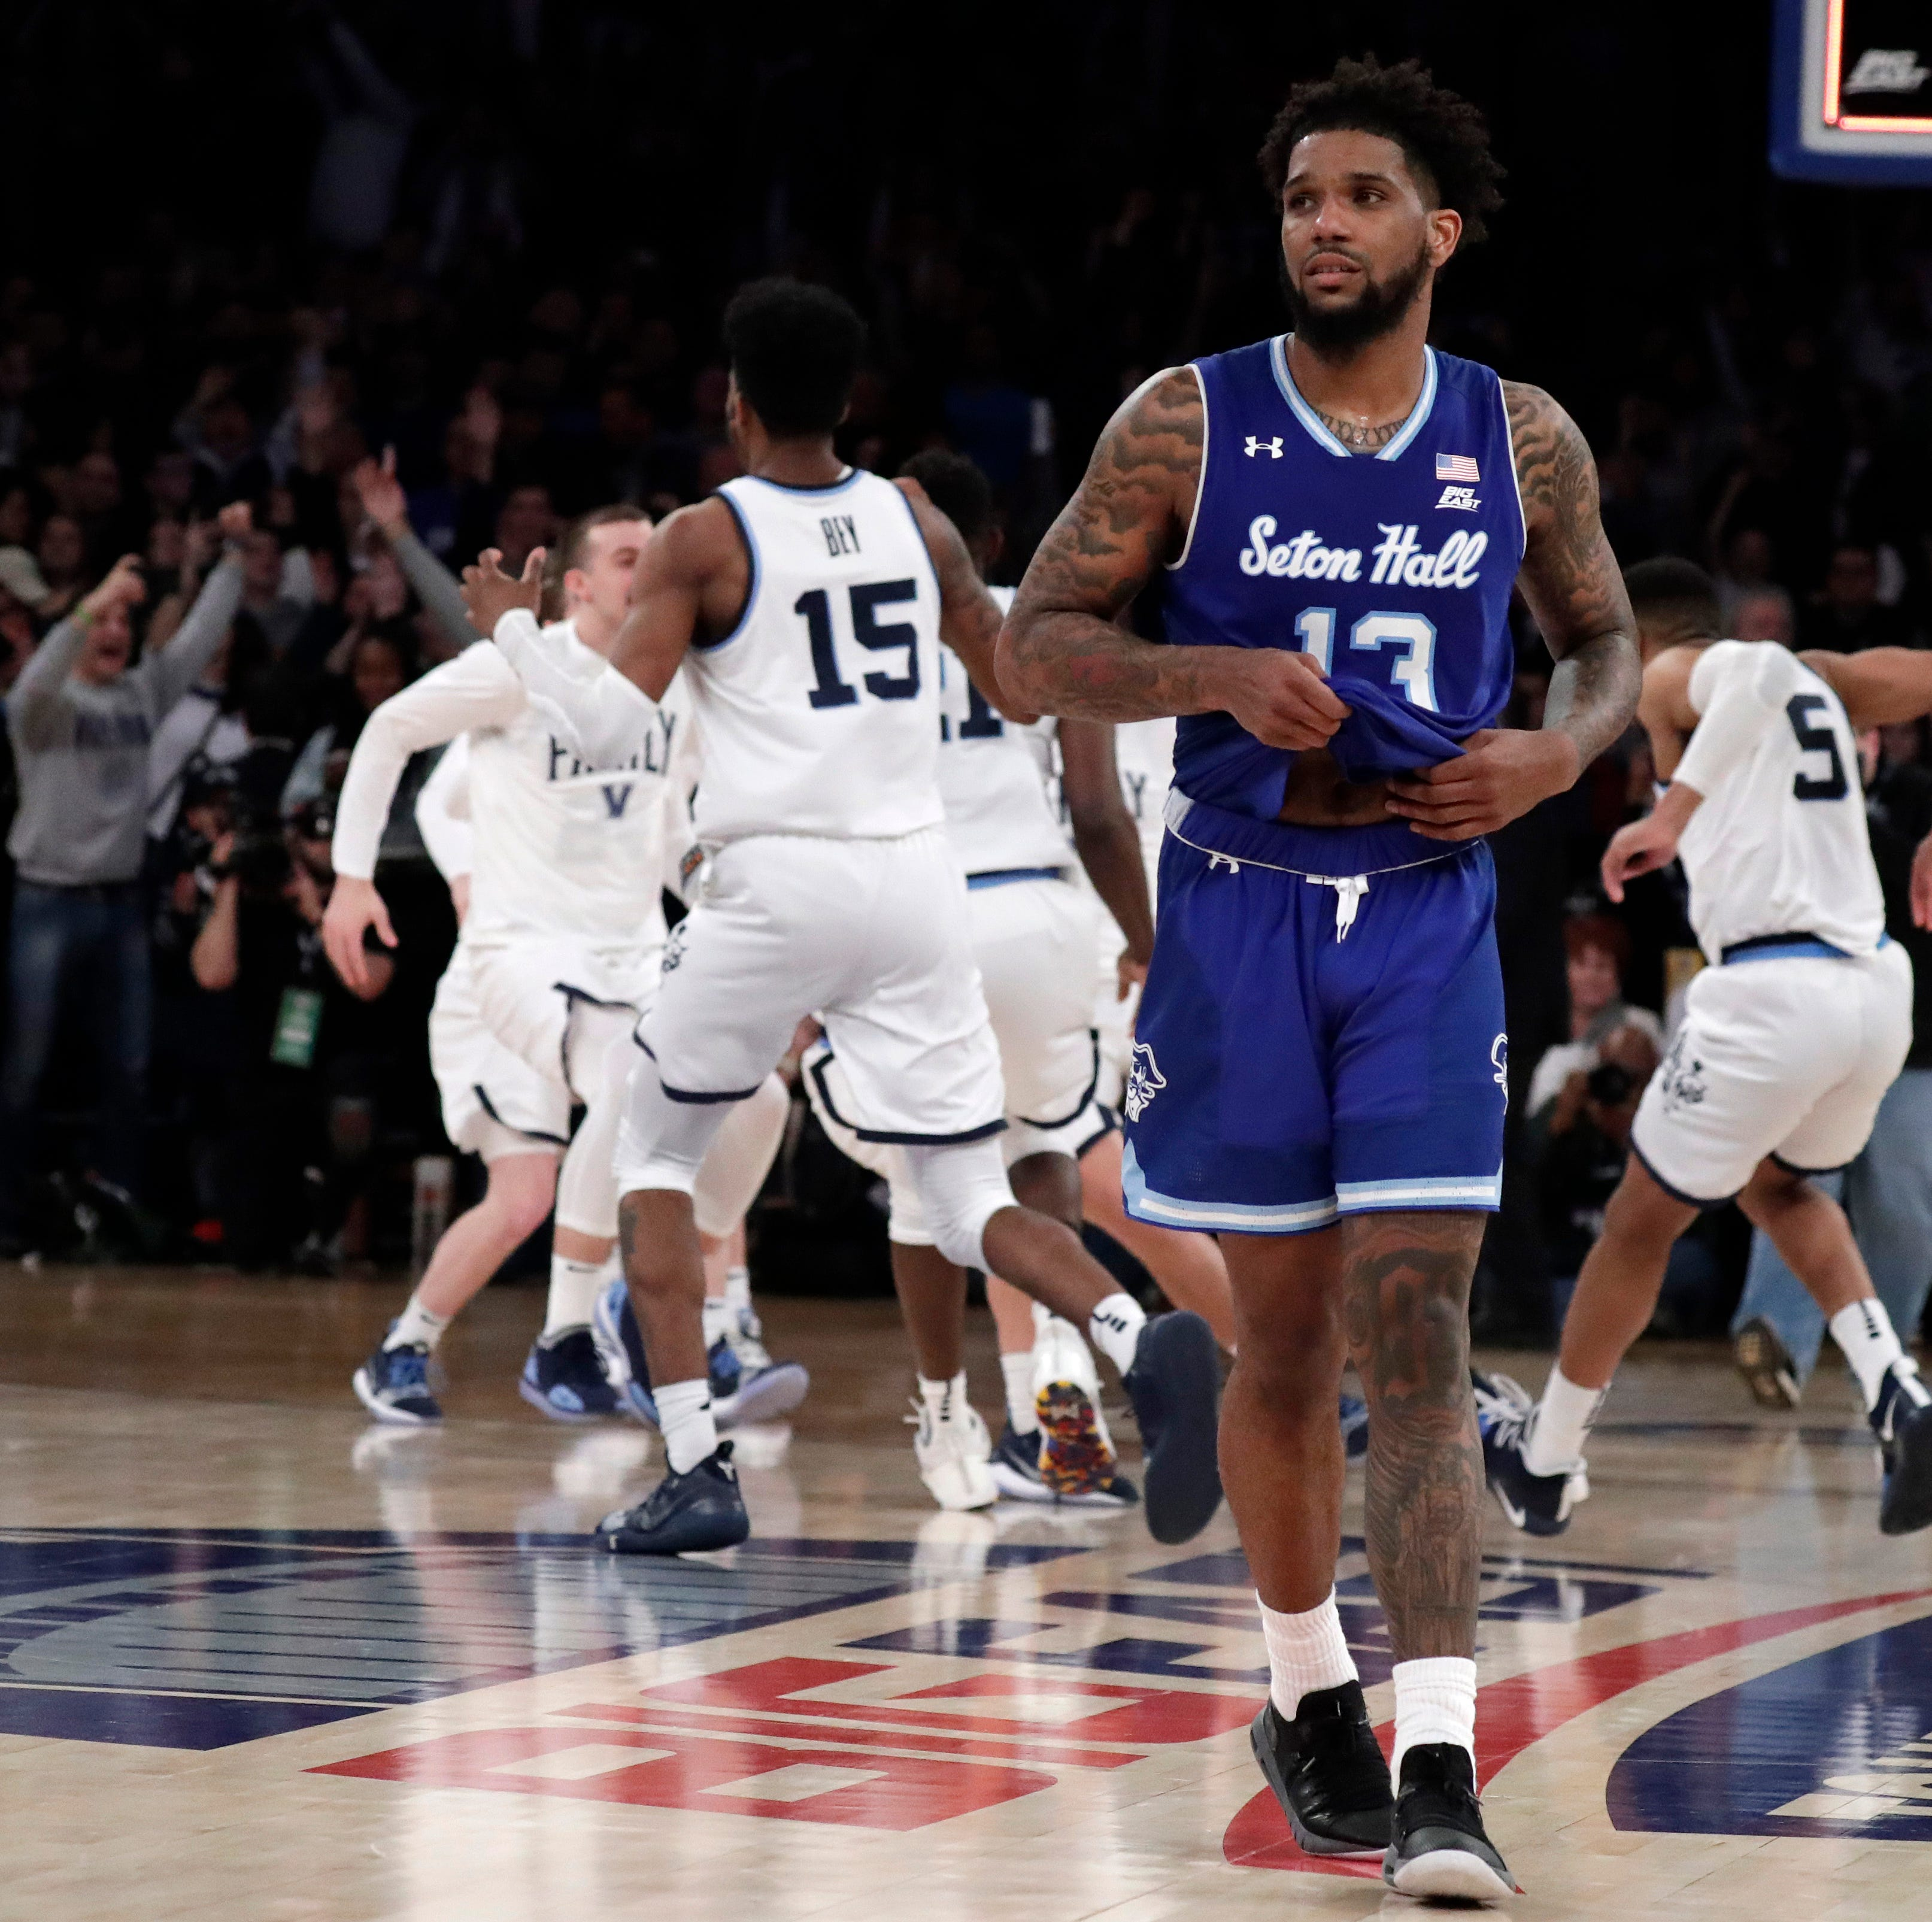 Seton Hall basketball: Rally falls just short to Villanova in Big East Tournament final